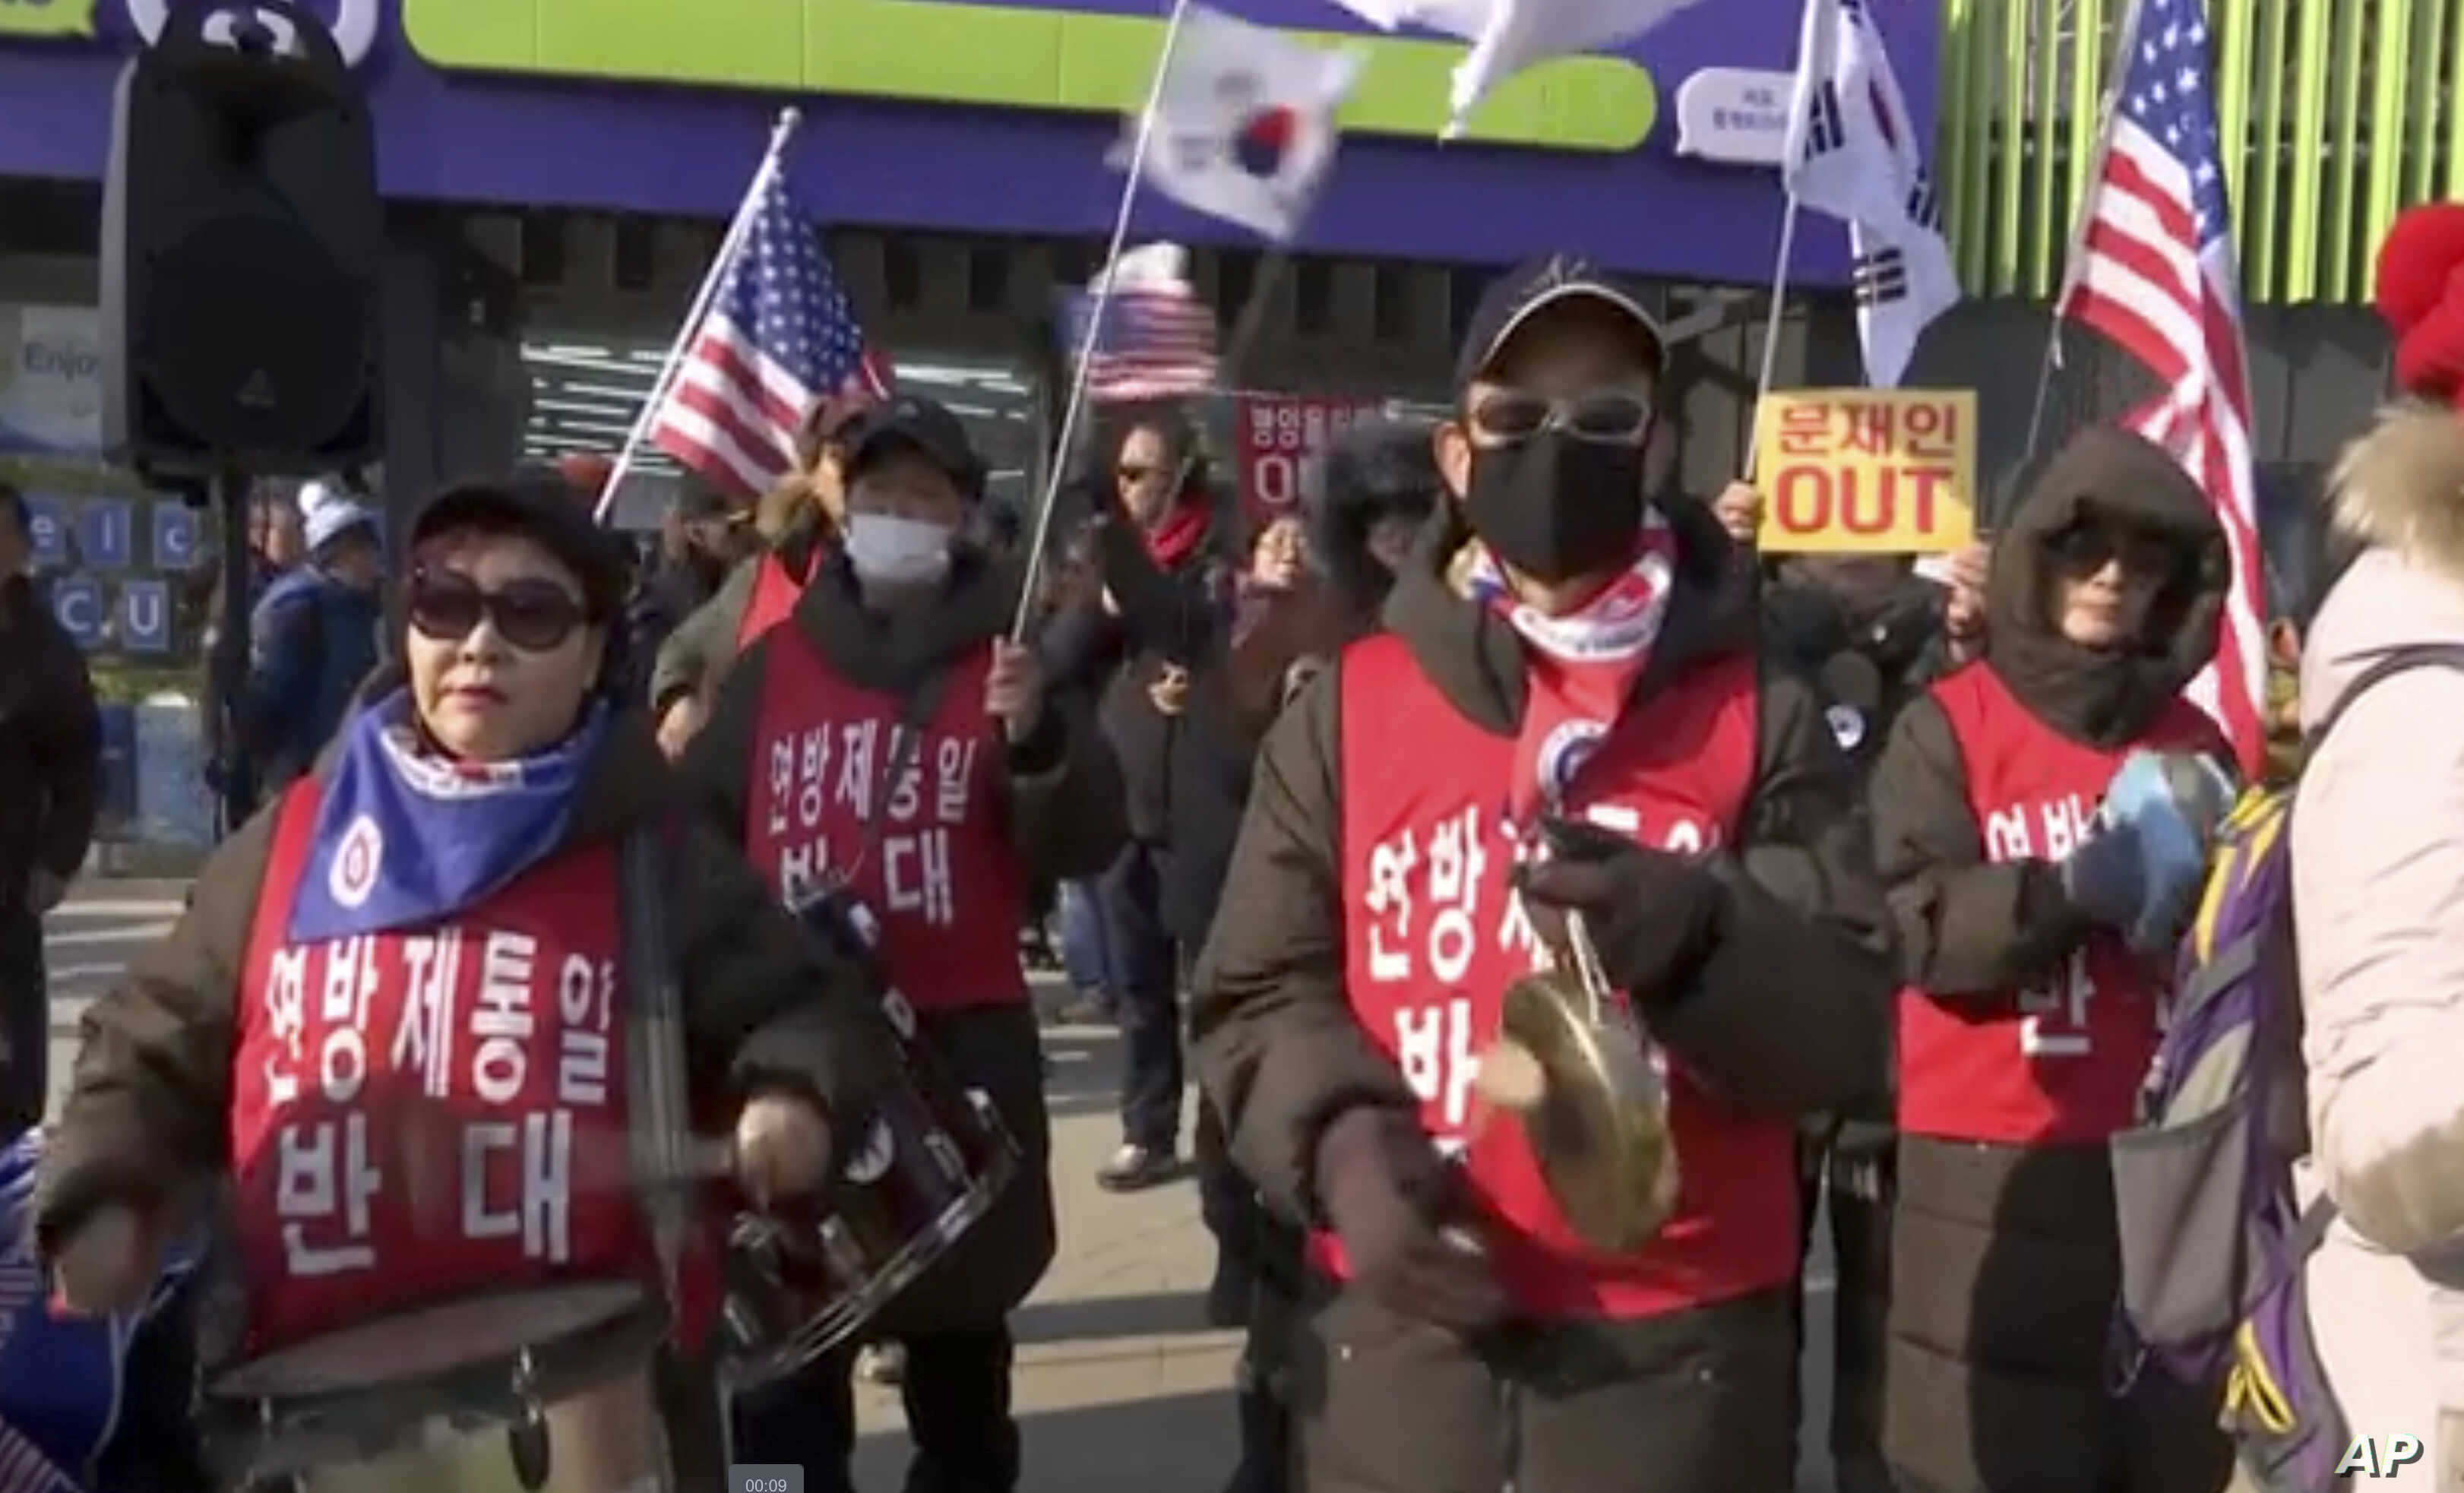 In this grab taken from TV, protesters hold flags and play instruments outside the Olympic Stadium in Pyeongchang, South Korea, Feb. 9, 2018.